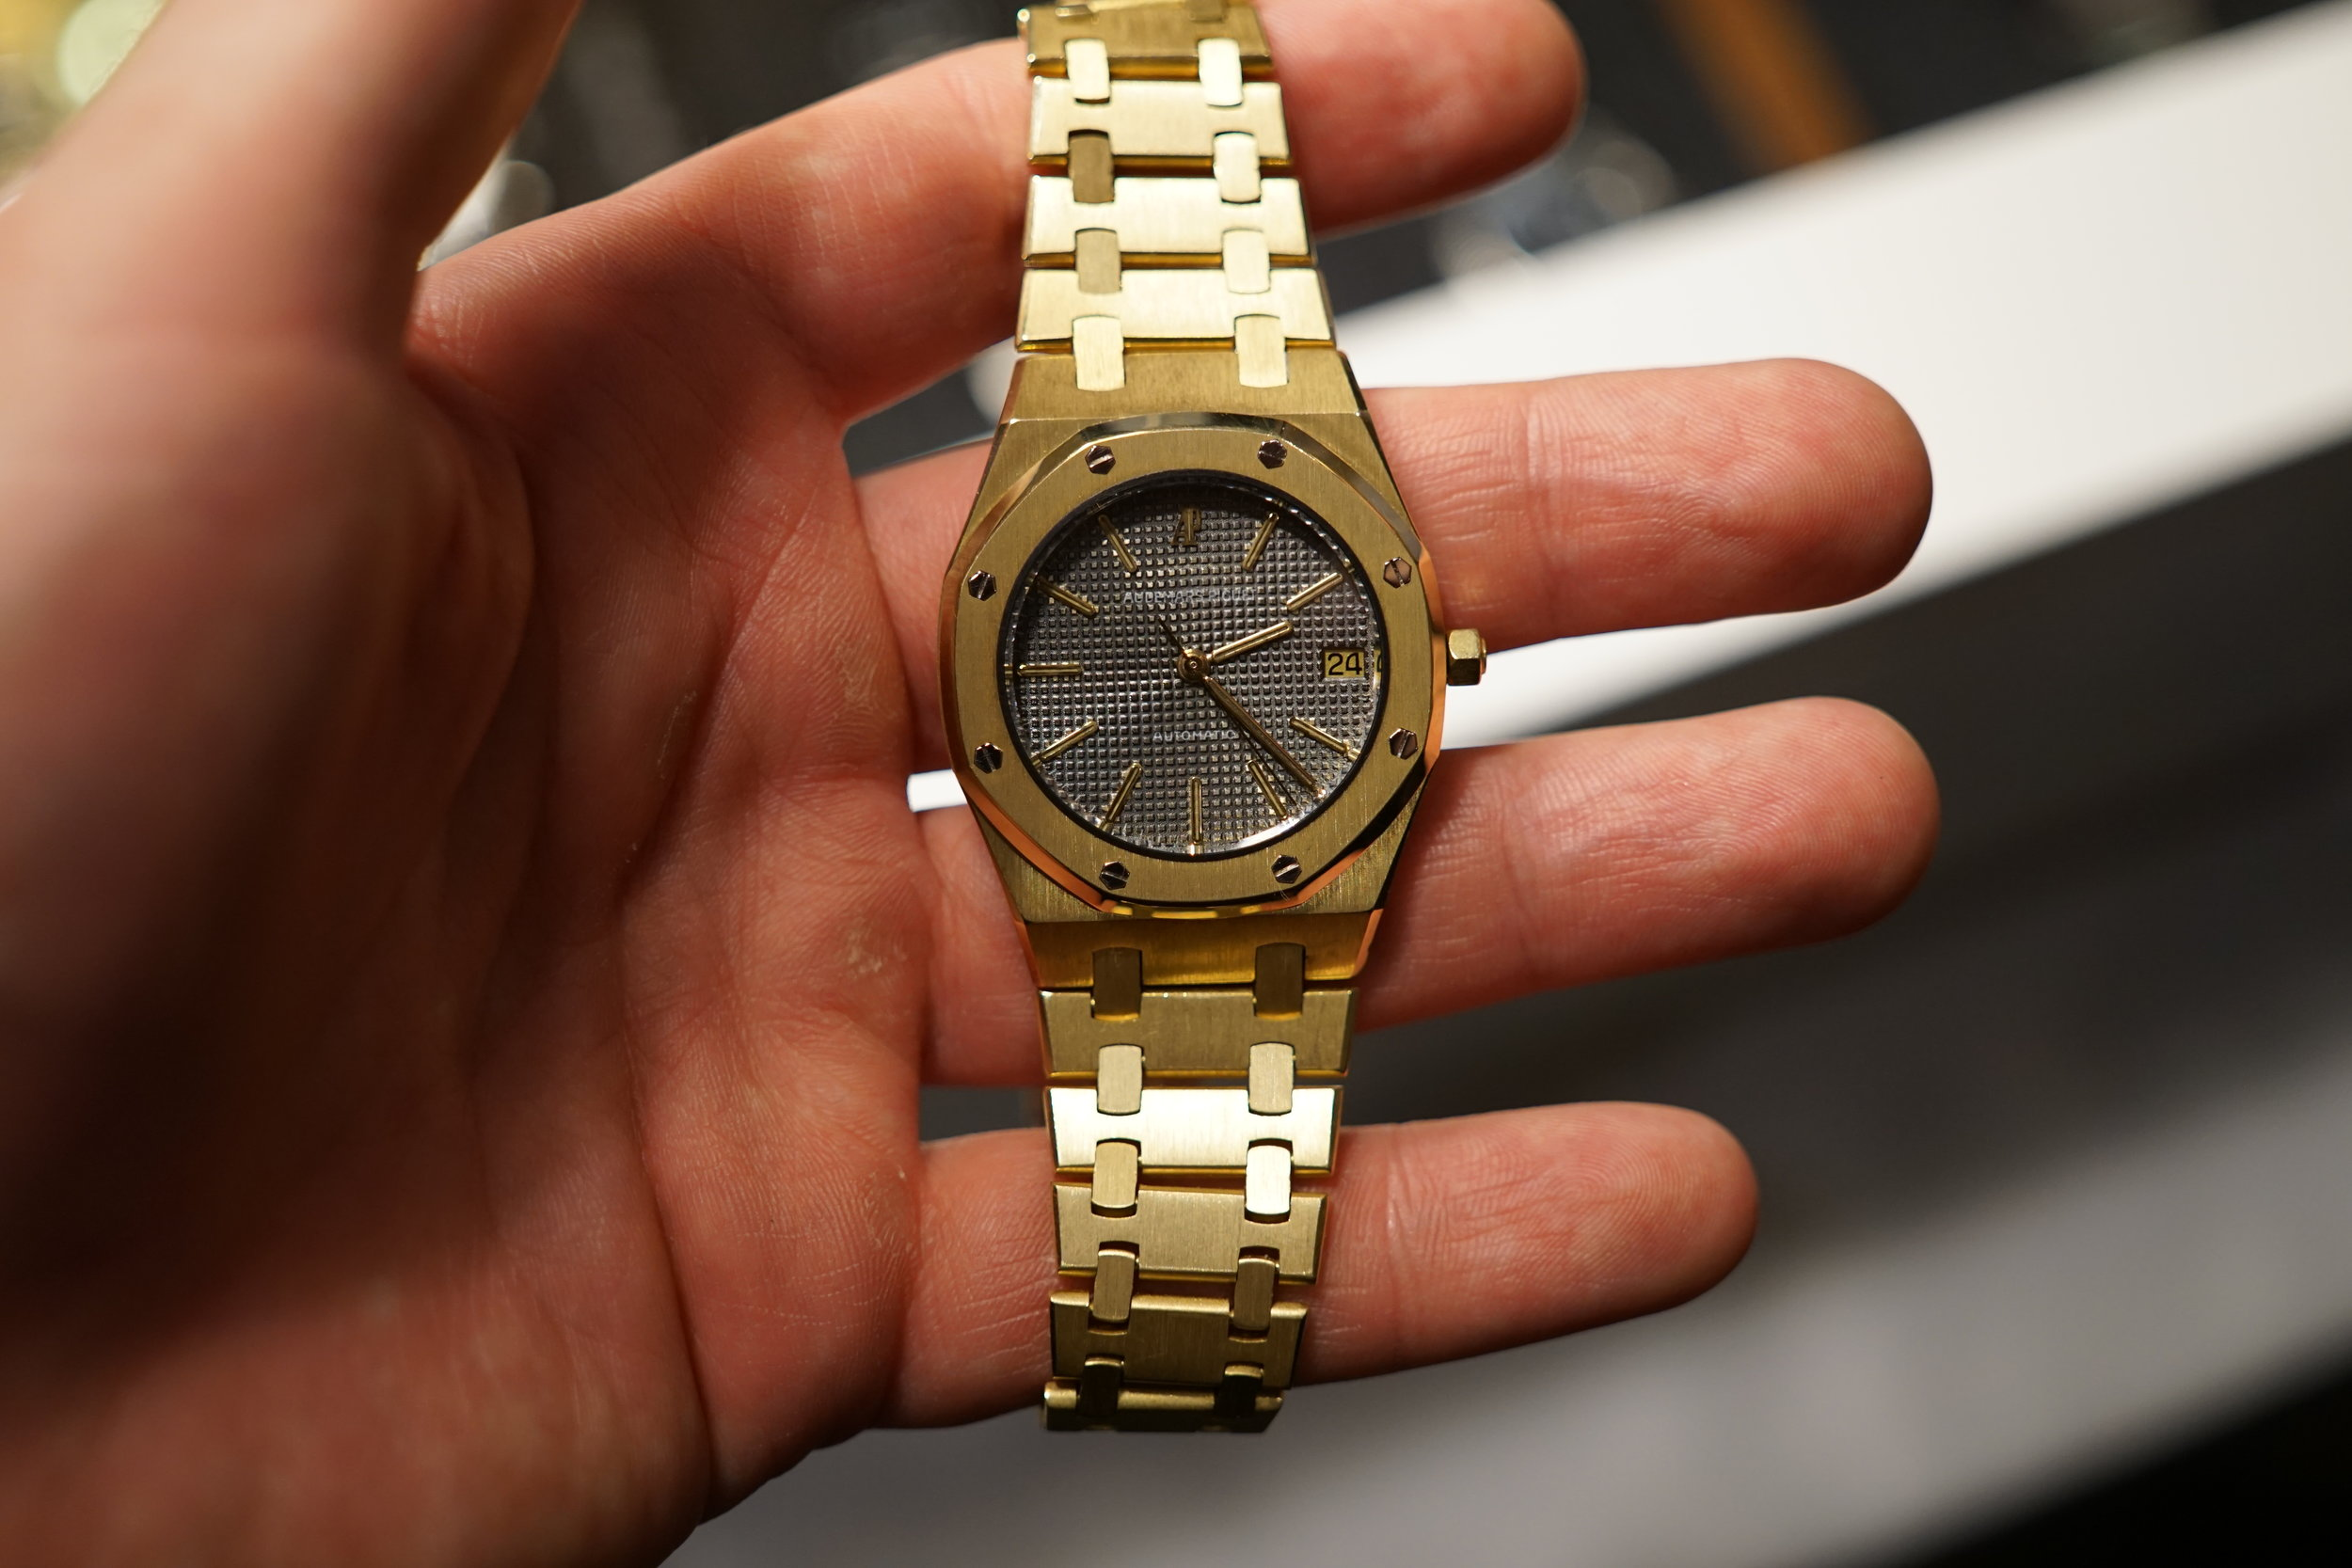 The very definition of a baller watch - a solid gold Royal Oak from year 1987.